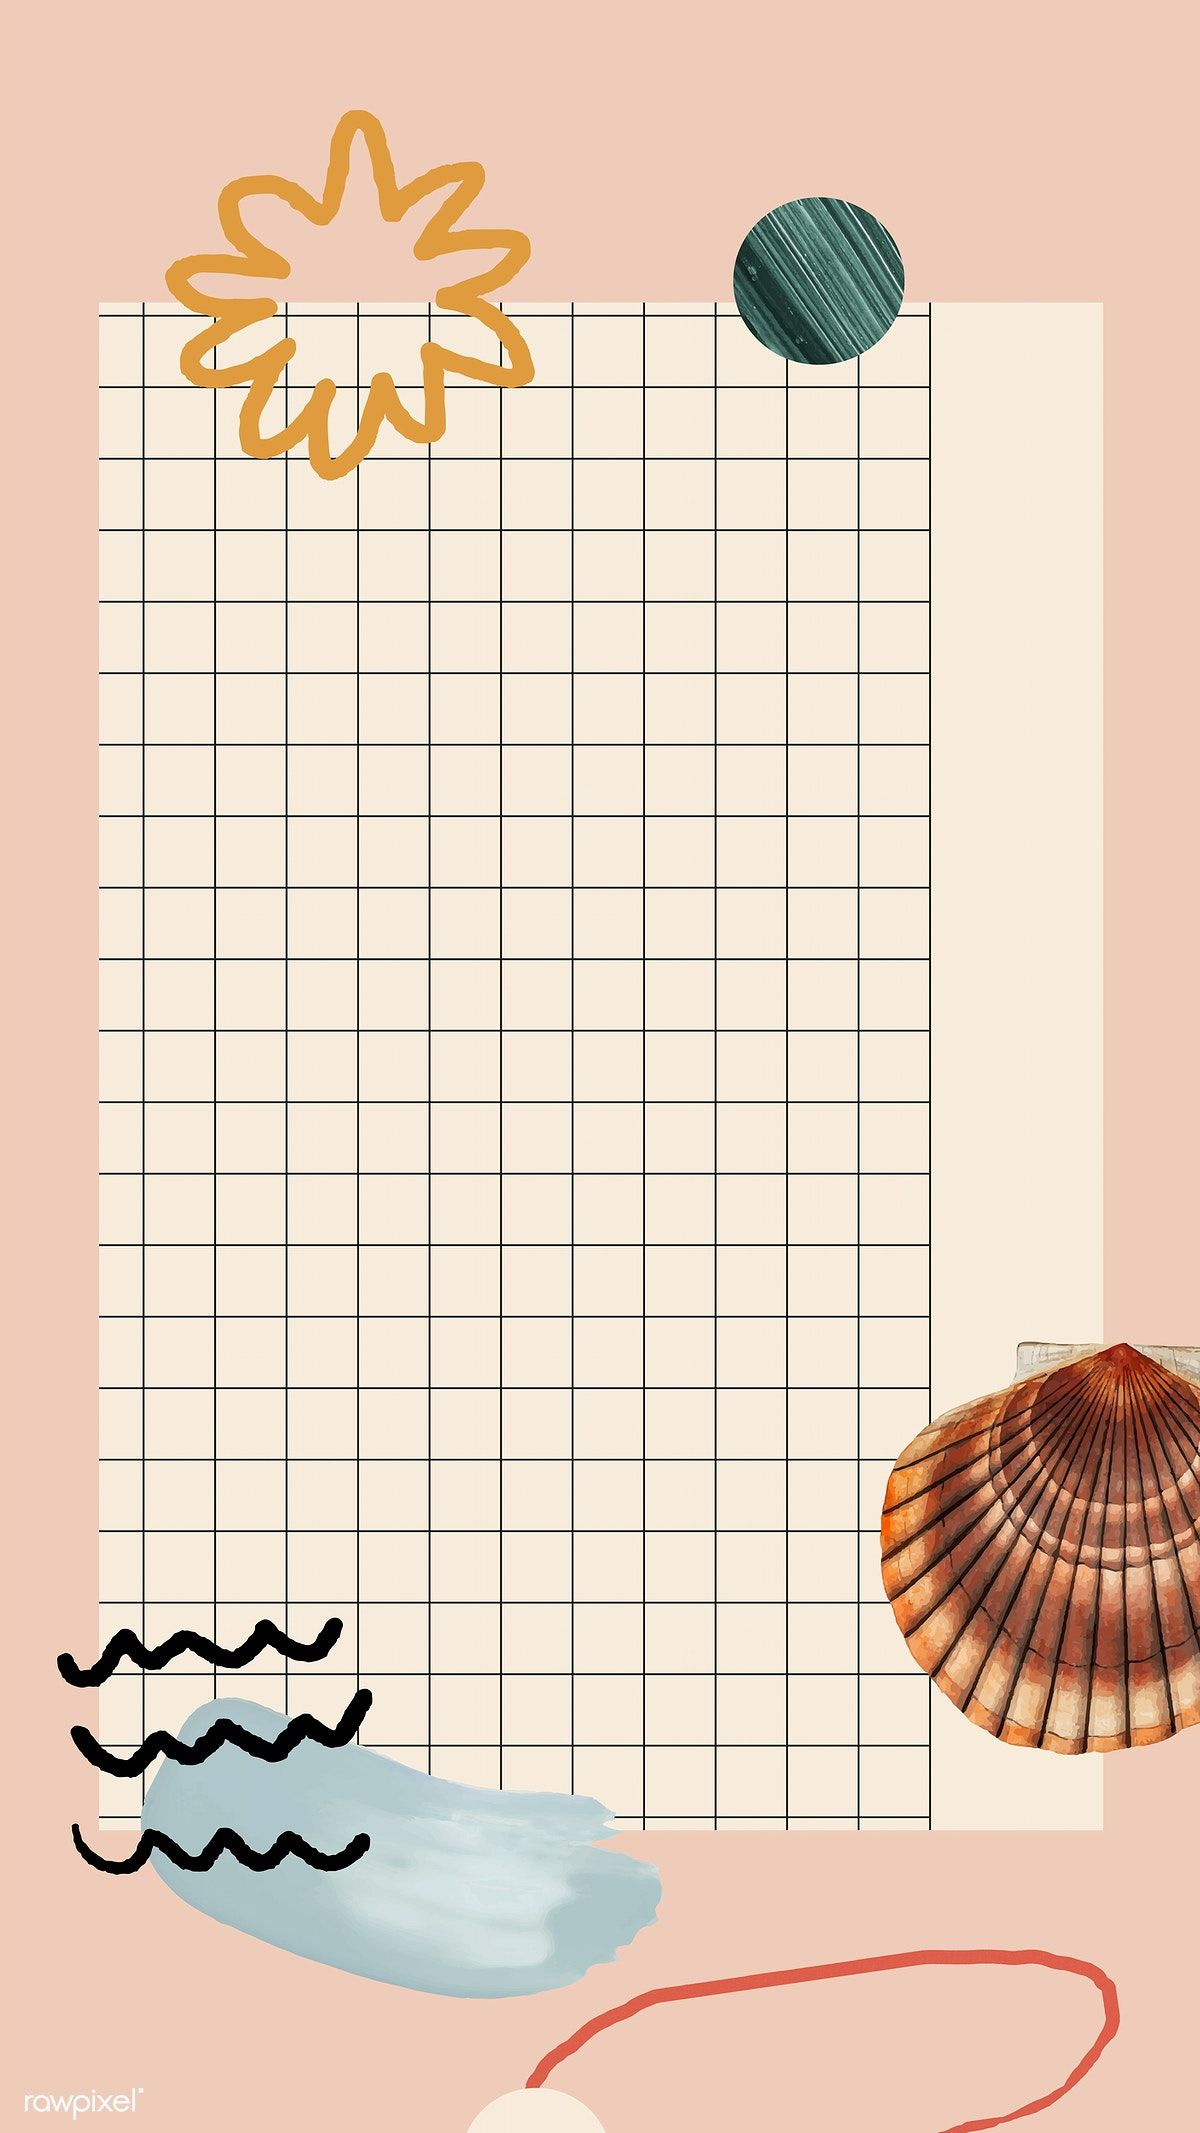 Download premium vector of Clam shell pattern on grid mobile phone wallpaper vector by katie about collage, aesthetic, Beach aesthetic background, abstract background, and aesthetic grid background 1219401